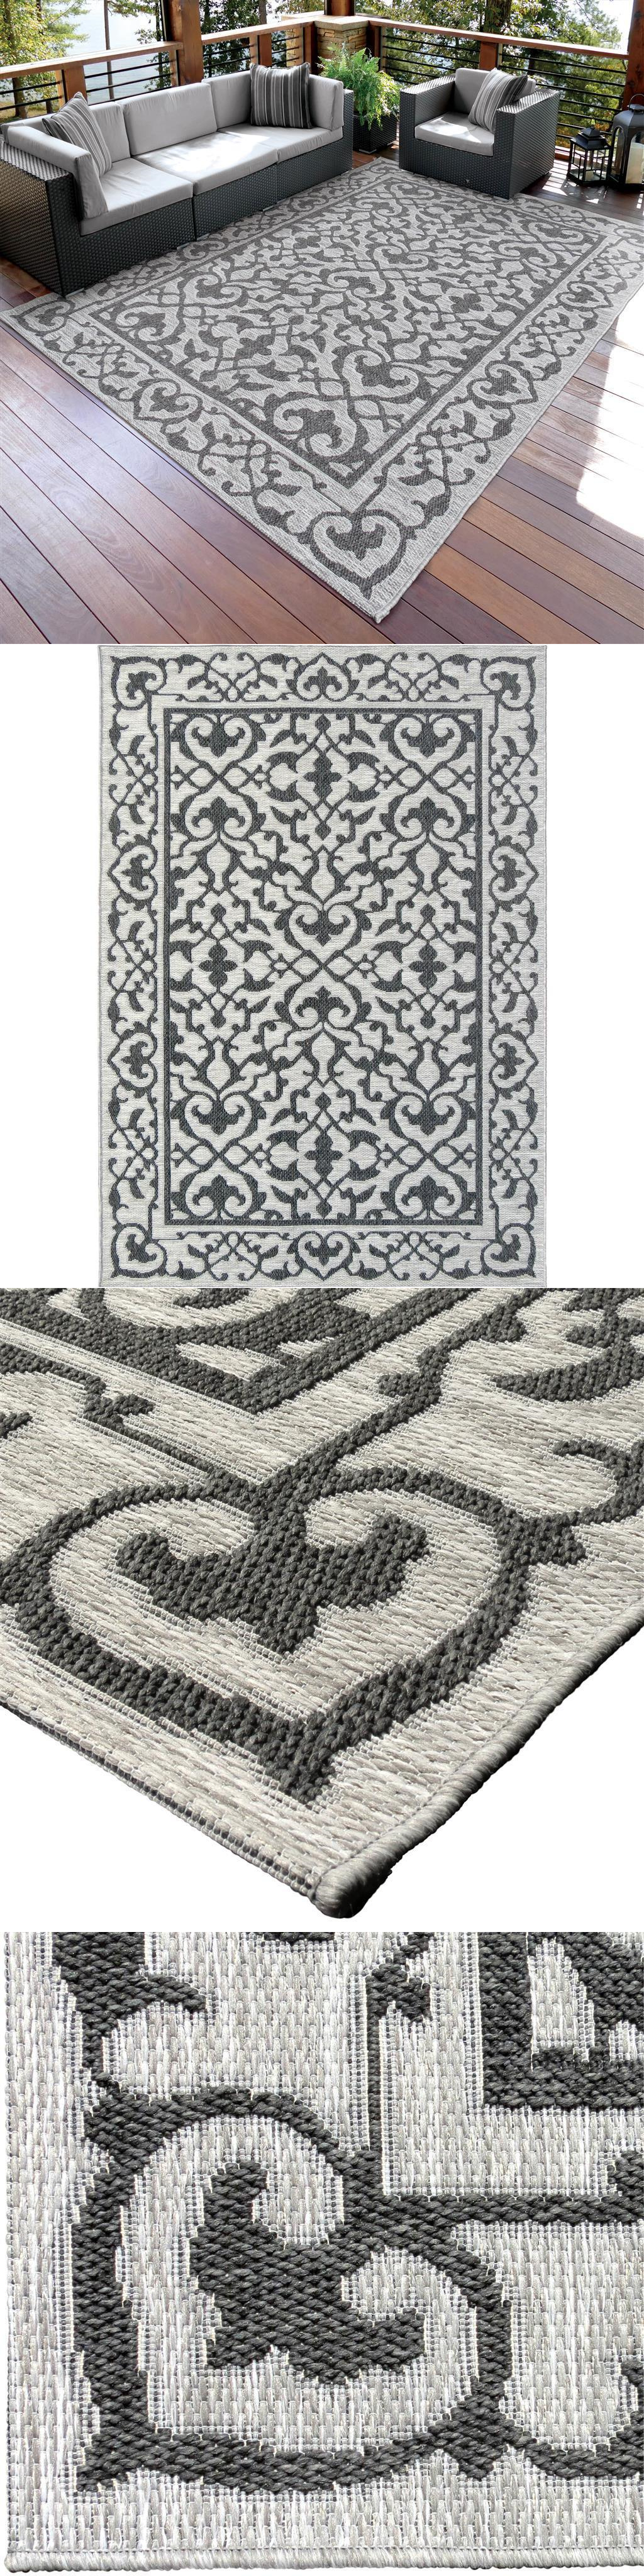 household items Rugs Area Rugs Outdoor Rugs Indoor Outdoor Rugs